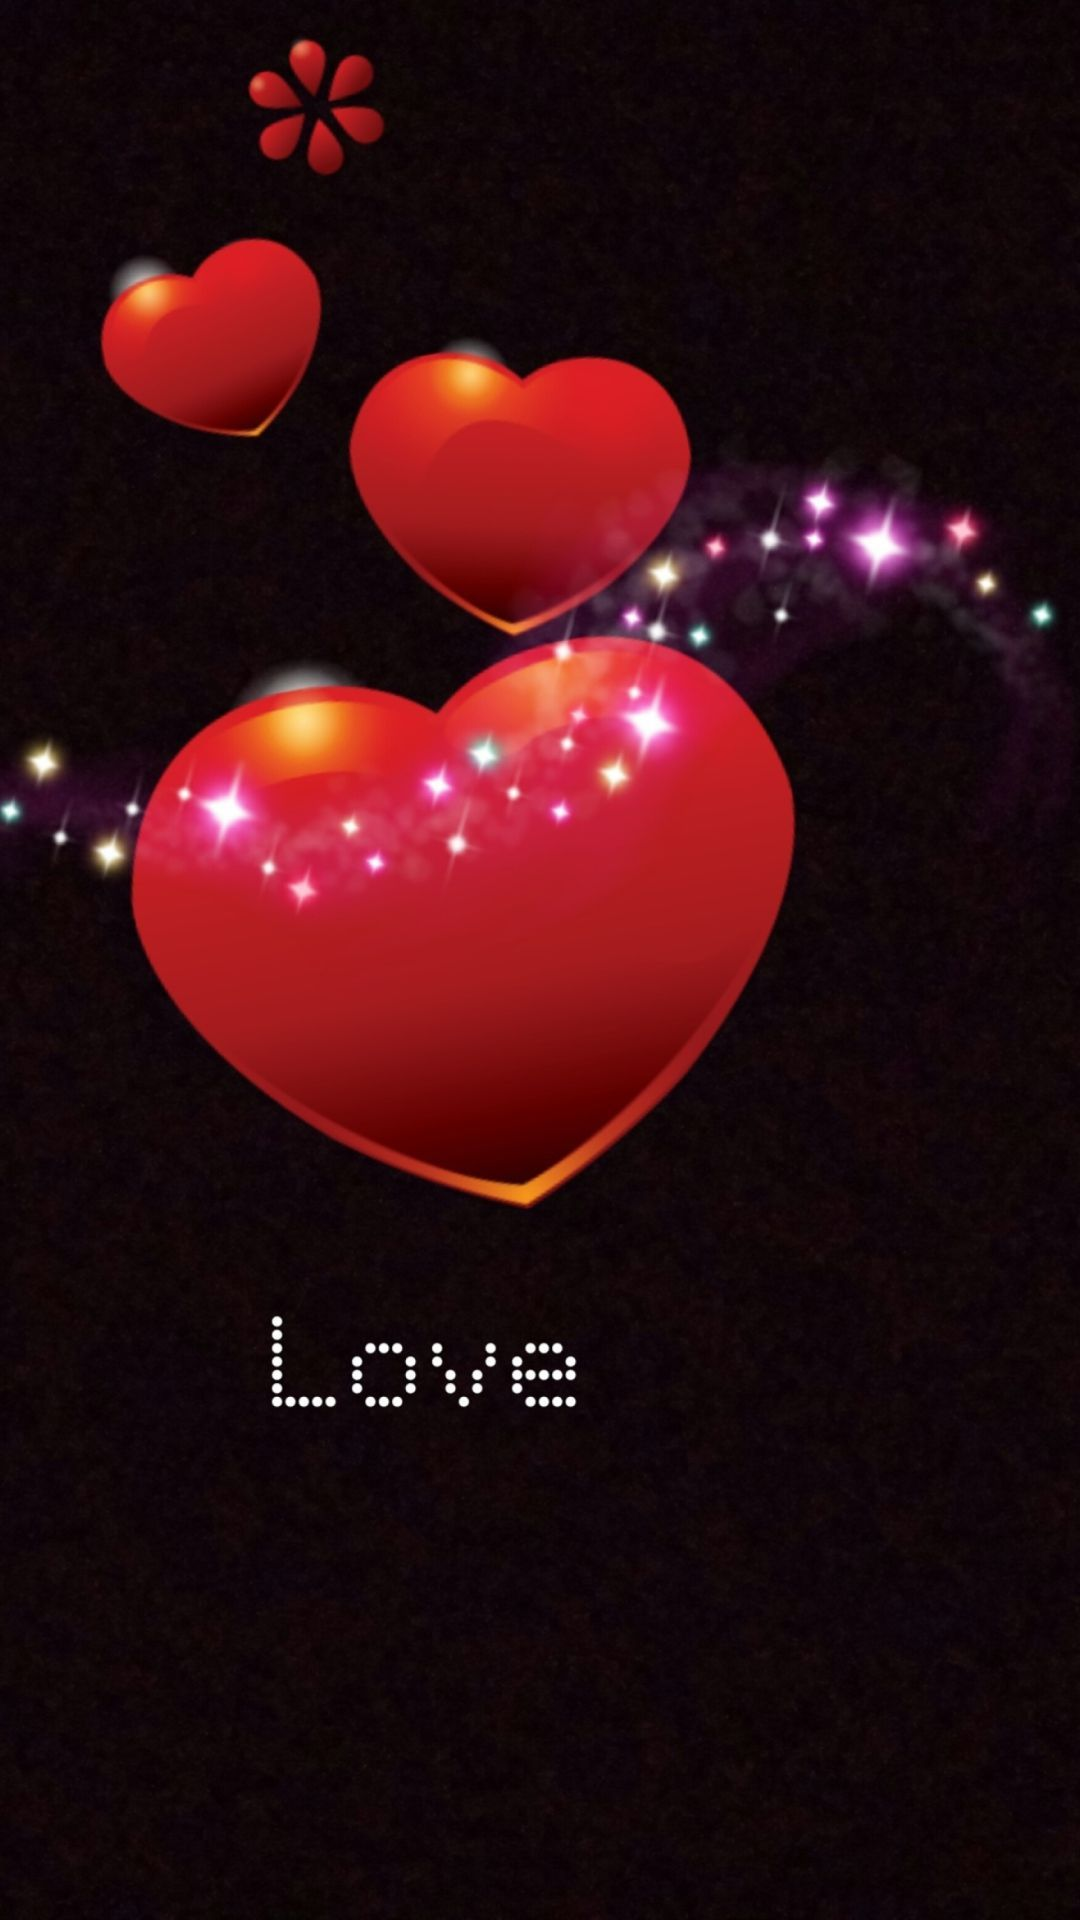 Love Beautiful Wallpaper Android Download In 2020 Heart Iphone Wallpaper Heart Wallpaper Wallpaper Iphone Love